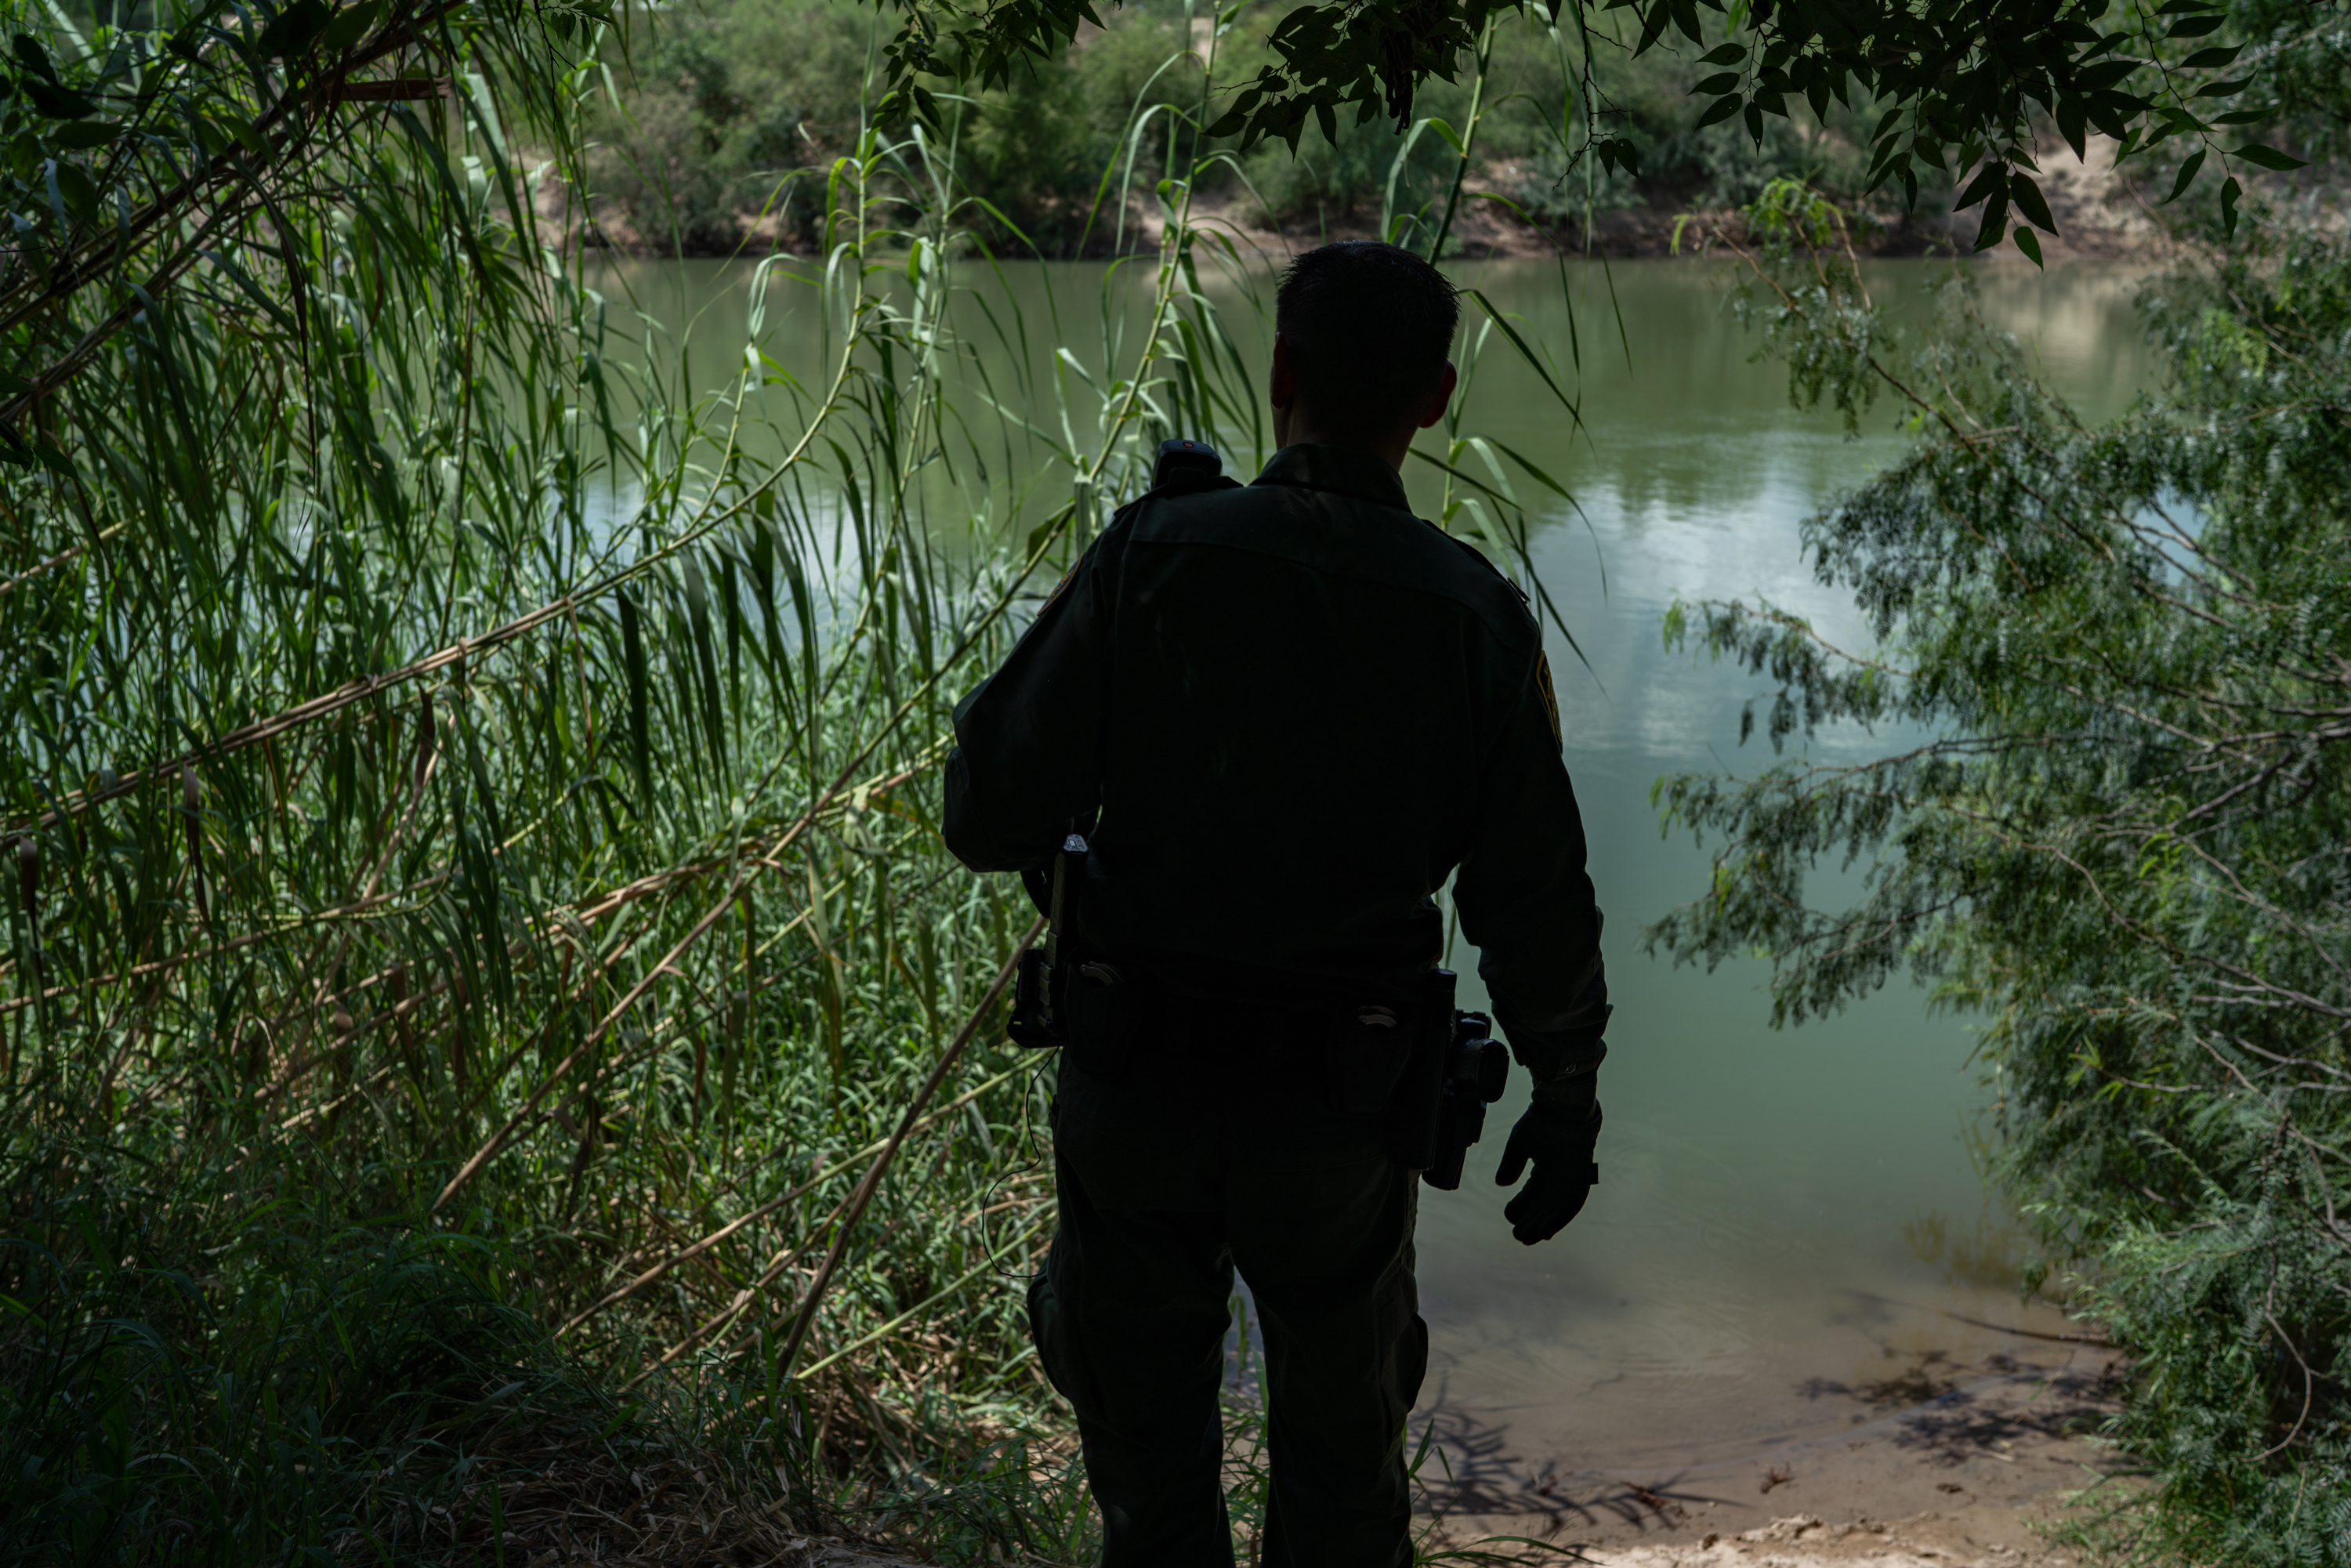 On U.S. soil a short boat ride from Mexico, Border Patrol agent Robert RodrÌguez, 38, checks a common landing area for people crossing the Rio Grande.